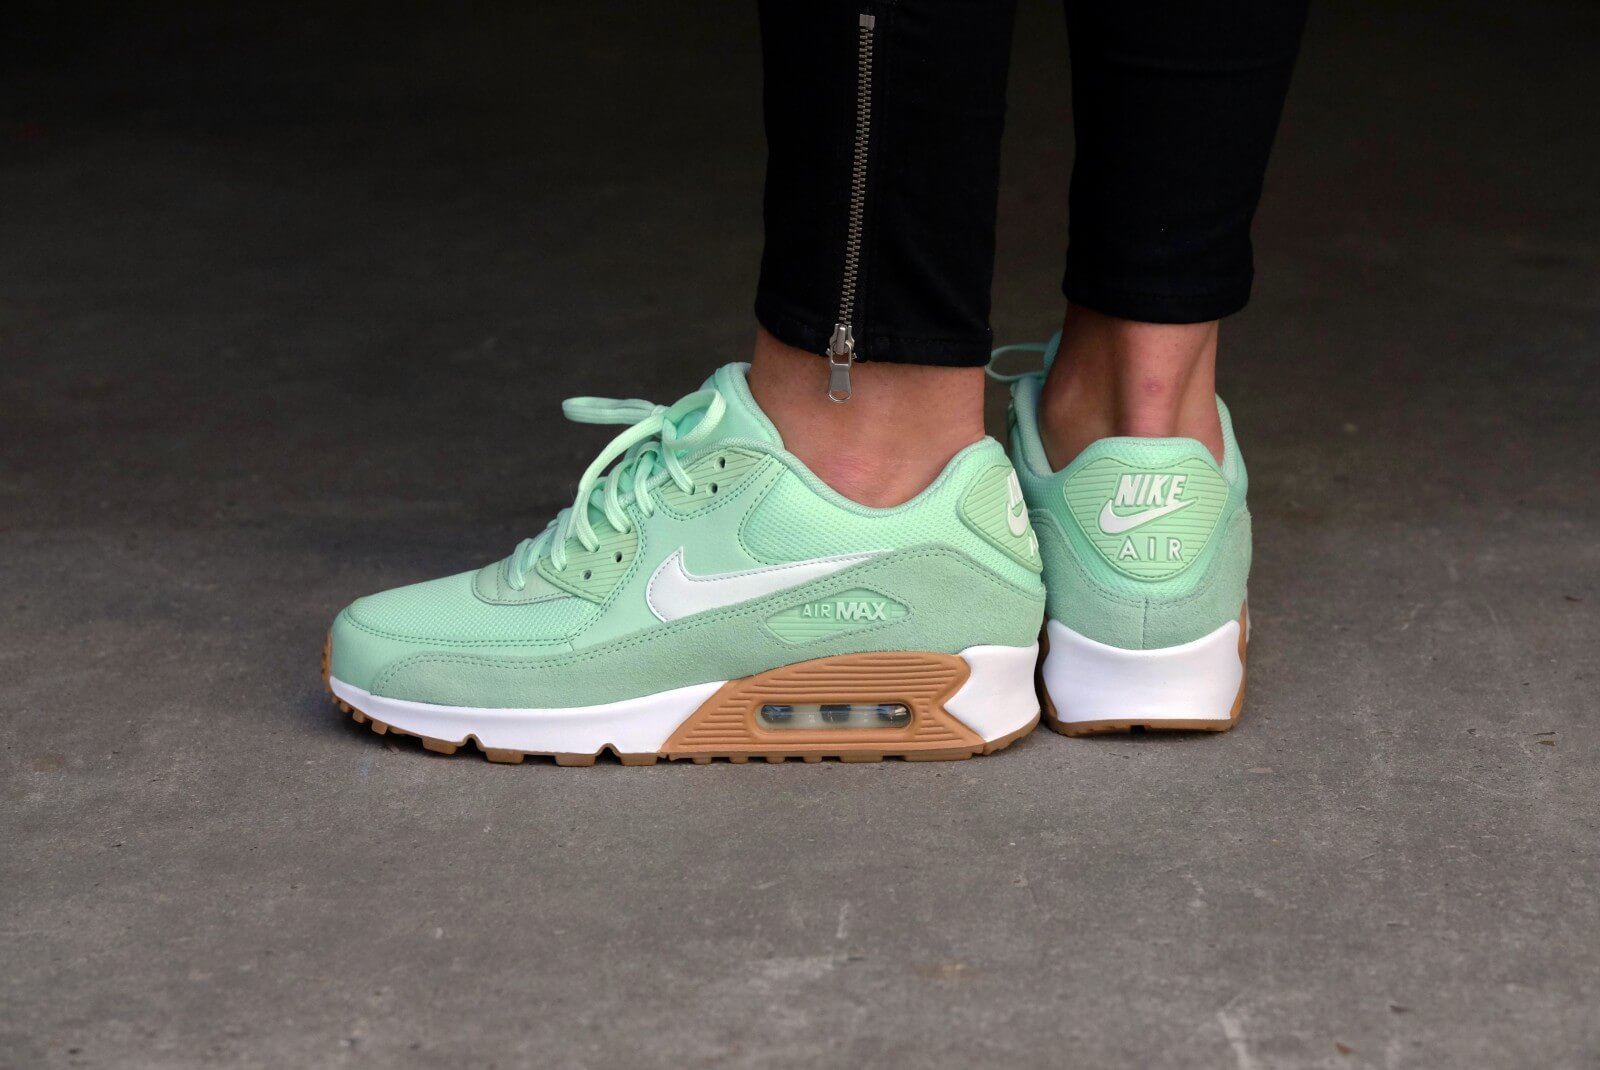 Nike Air Max 90 wmns 'Clear Mint' | My Style | Nike free